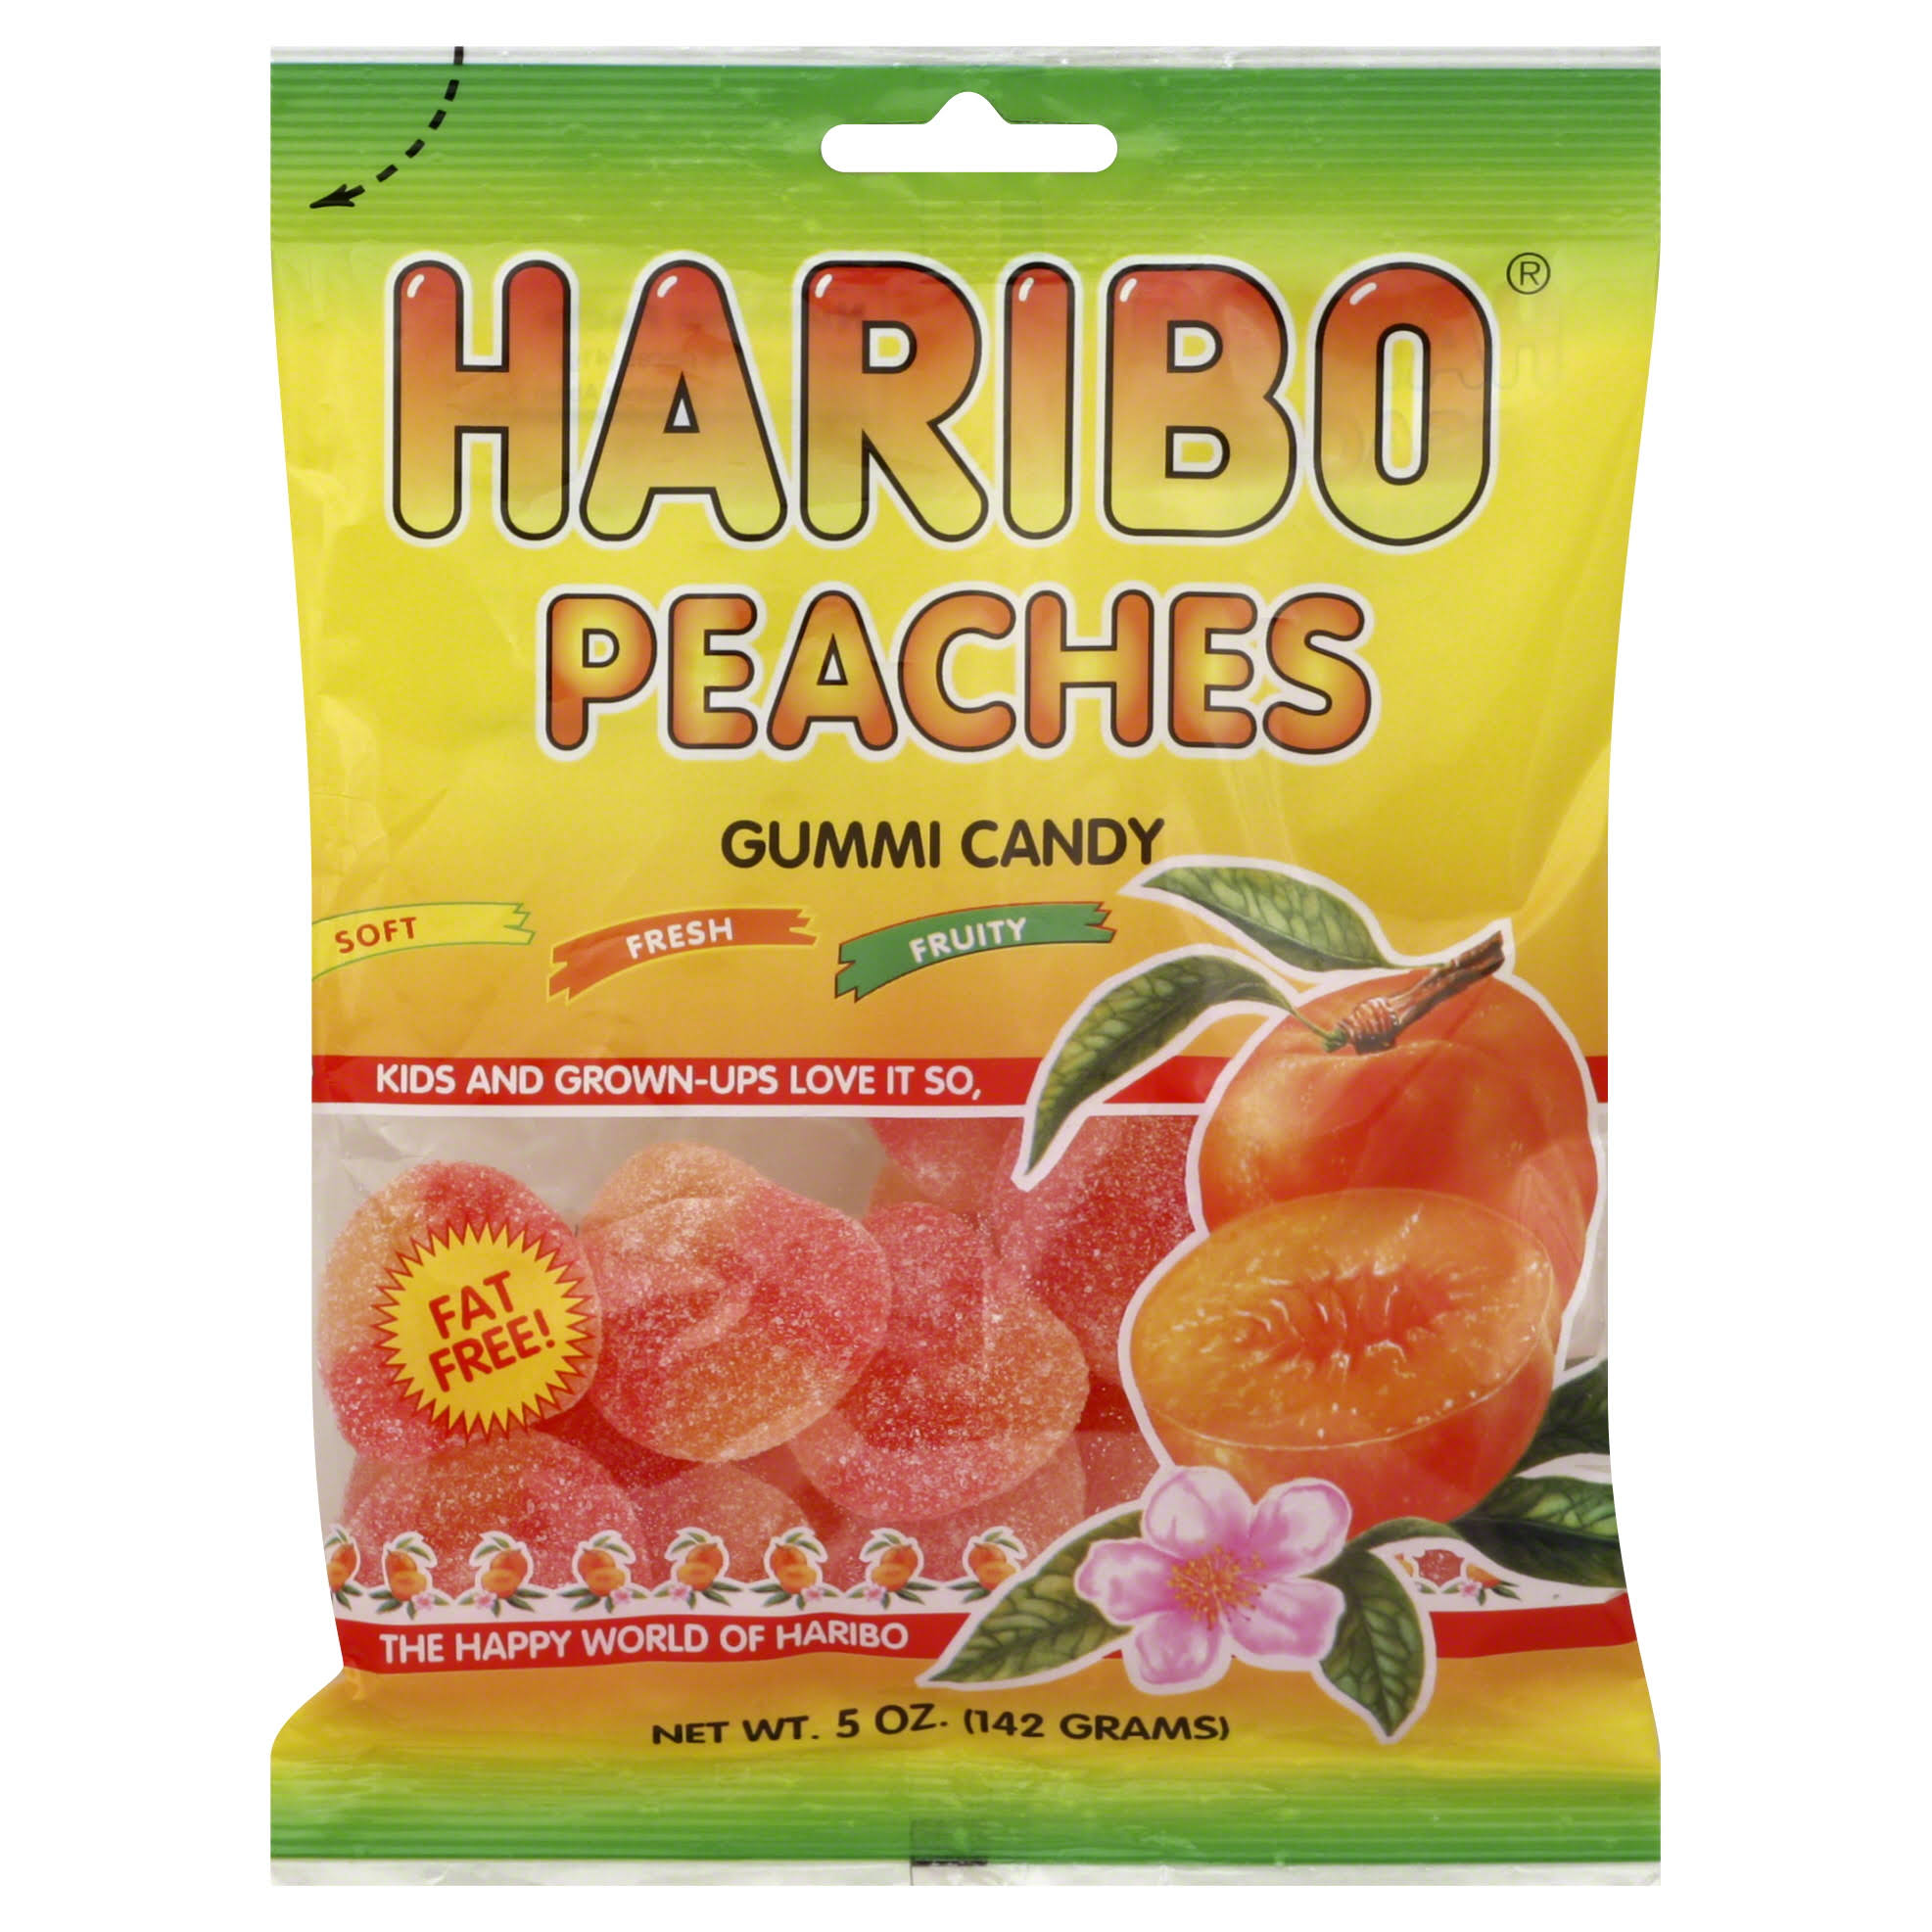 Haribo Gummi Candy - Peaches, 5oz